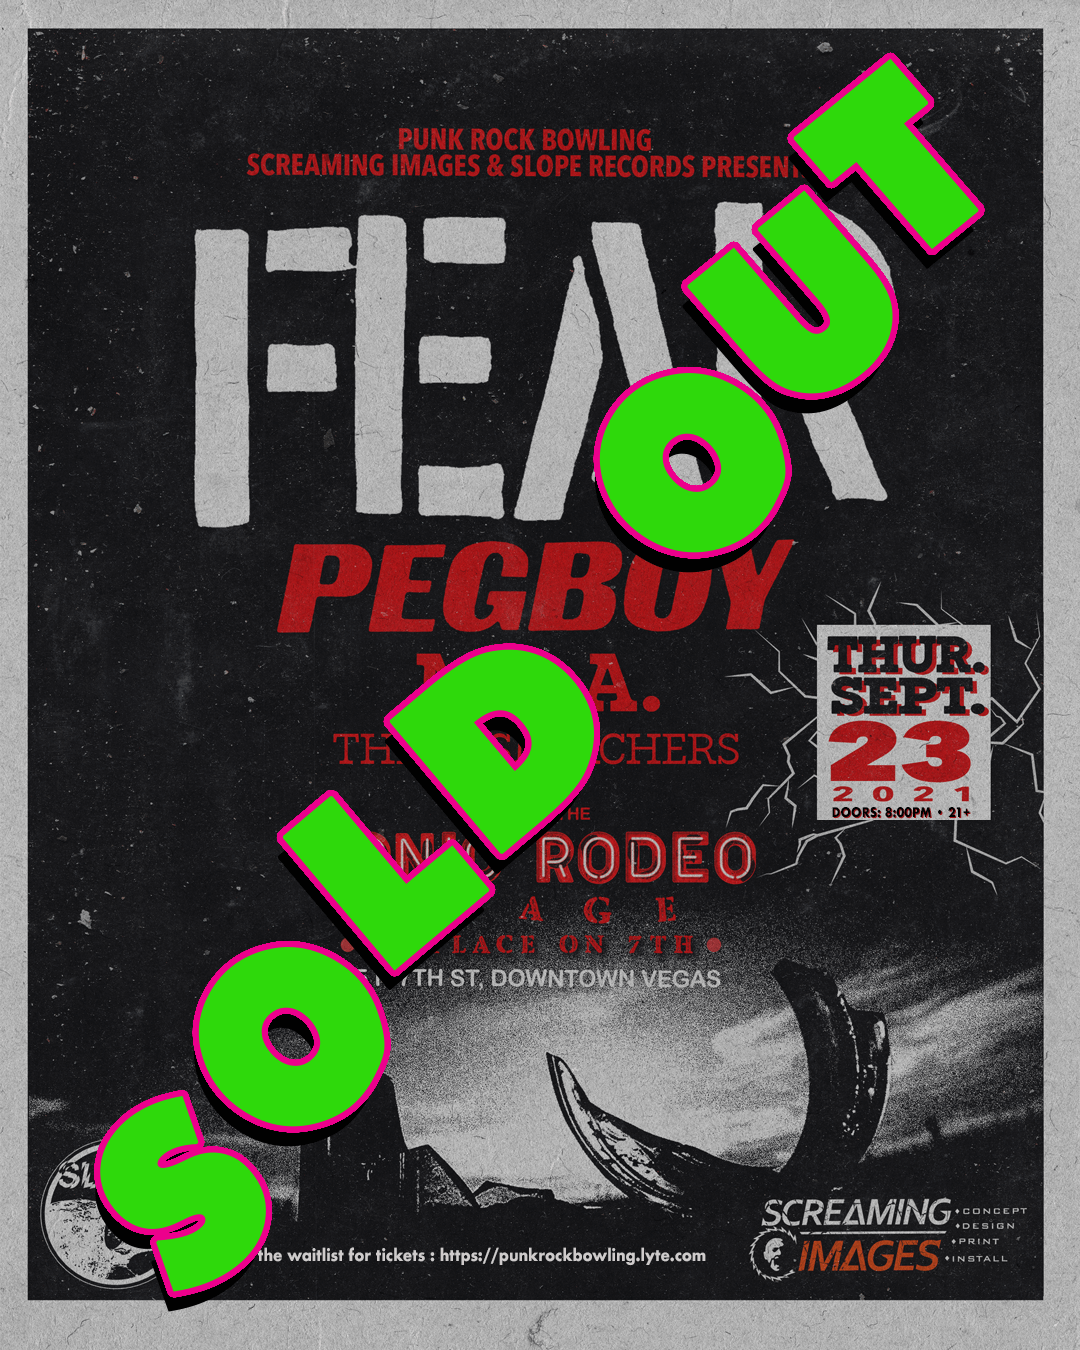 PUNK ROCK BOWLING 2021 AFTER PARTY LAS VEGAS FEAR PEGBOY M.I.A. THE BESMIRCHERS SOLD OUT